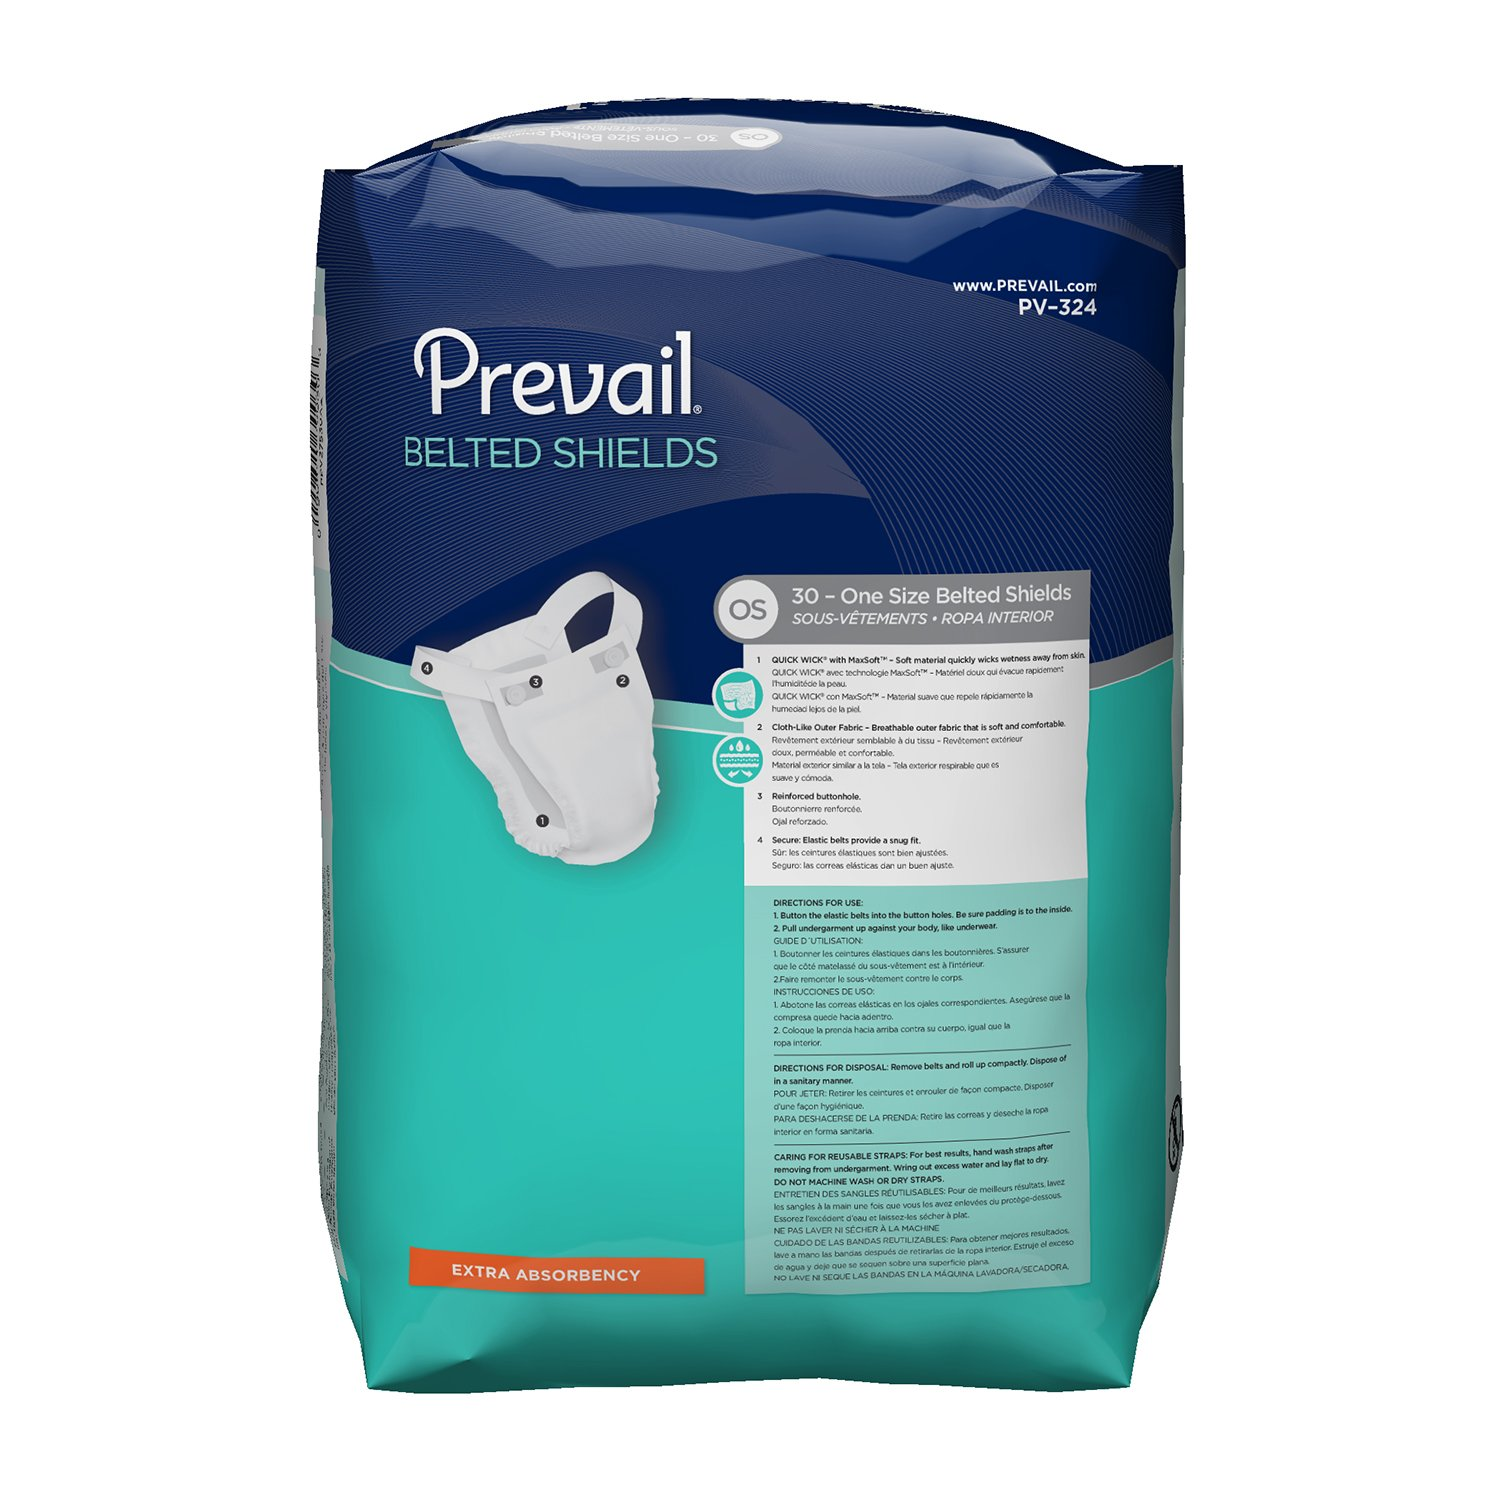 Prevail Extra Absorbency Incontinence Belted Shields, 120 Total Count by Prevail (Image #2)